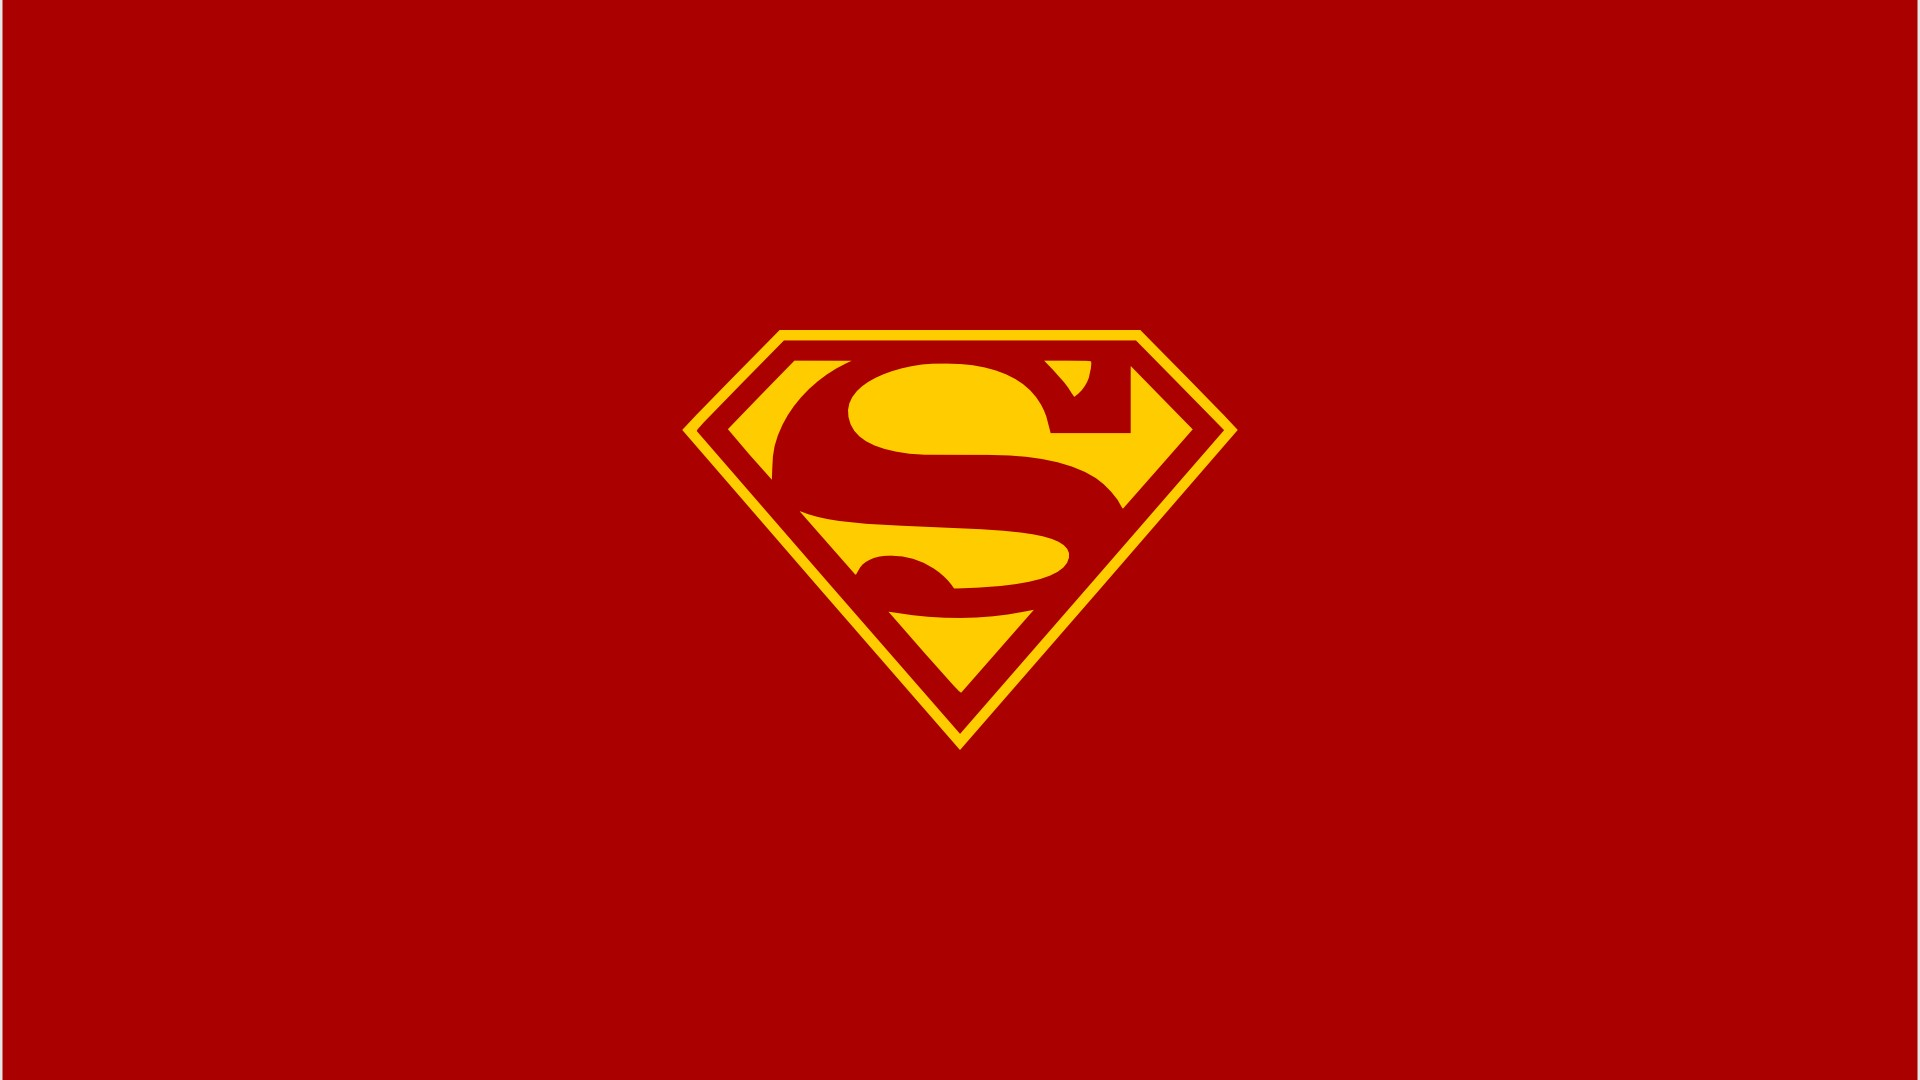 Red dc comics superman superheroes logo simple wallpaper   ClipArt 1920x1080